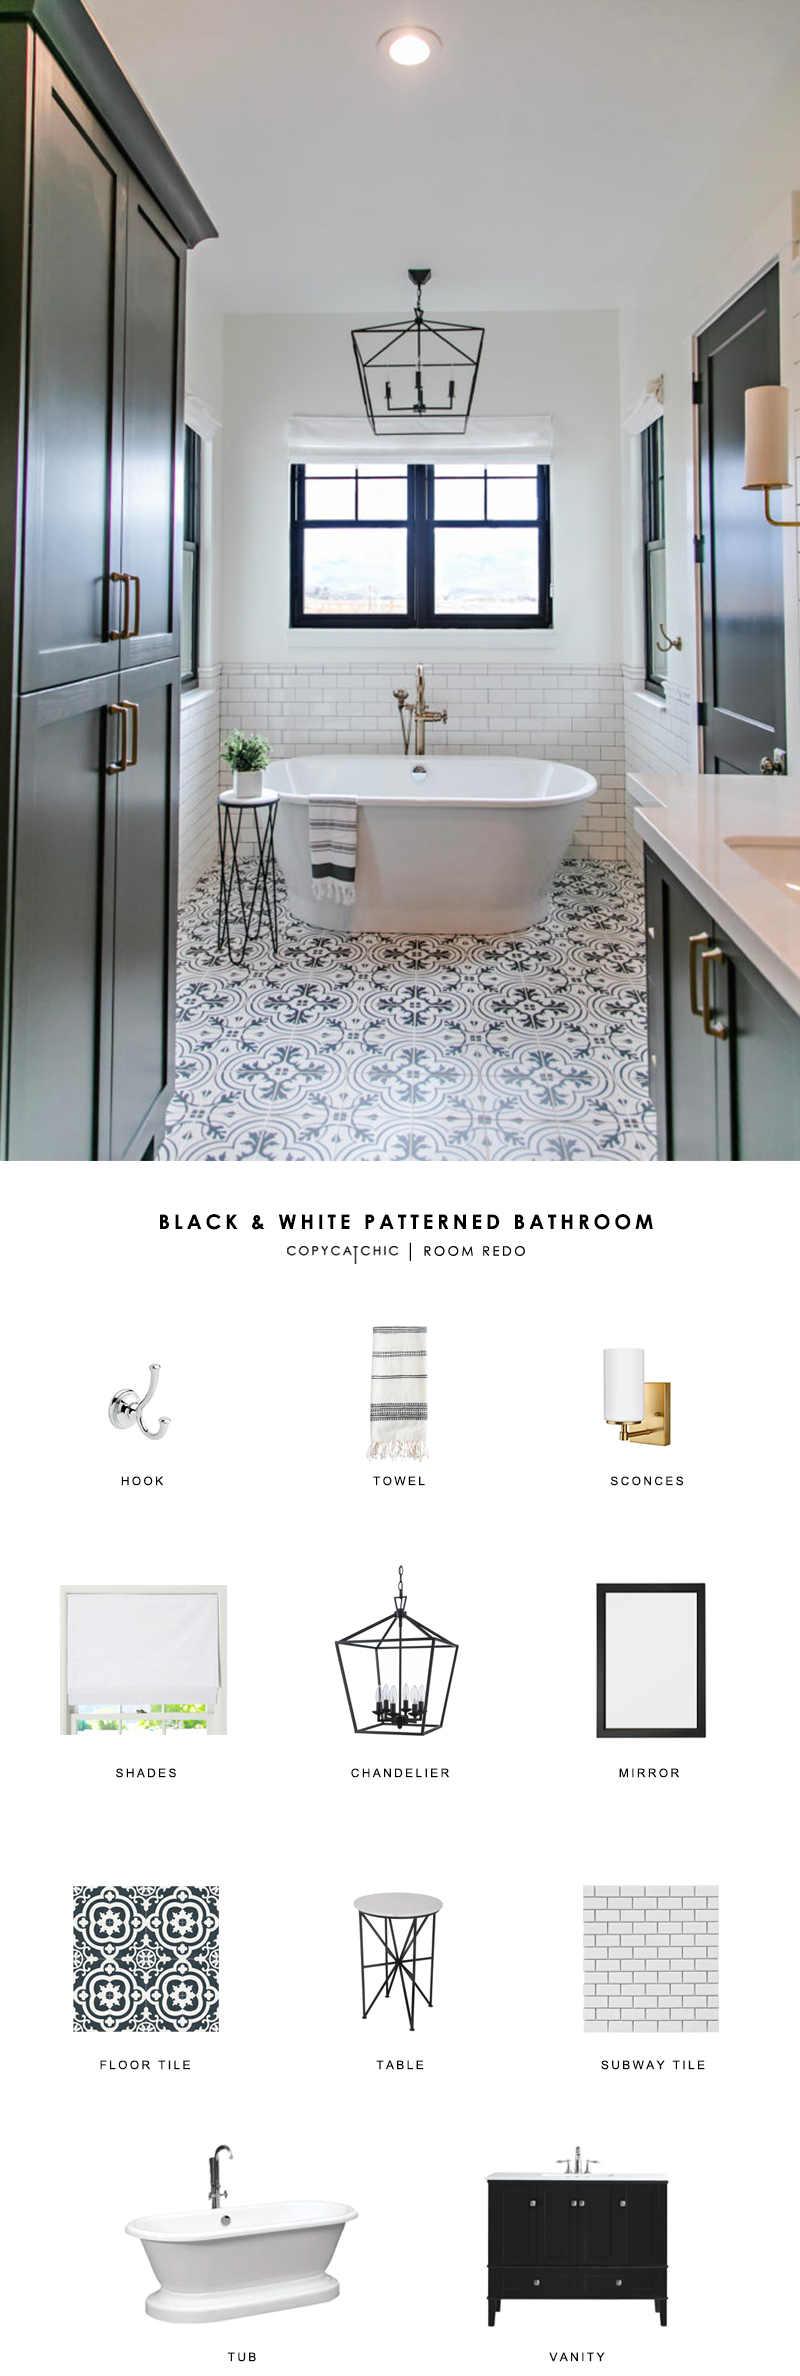 Room Redo | Black and White Patterned Bathroom - copycatchic